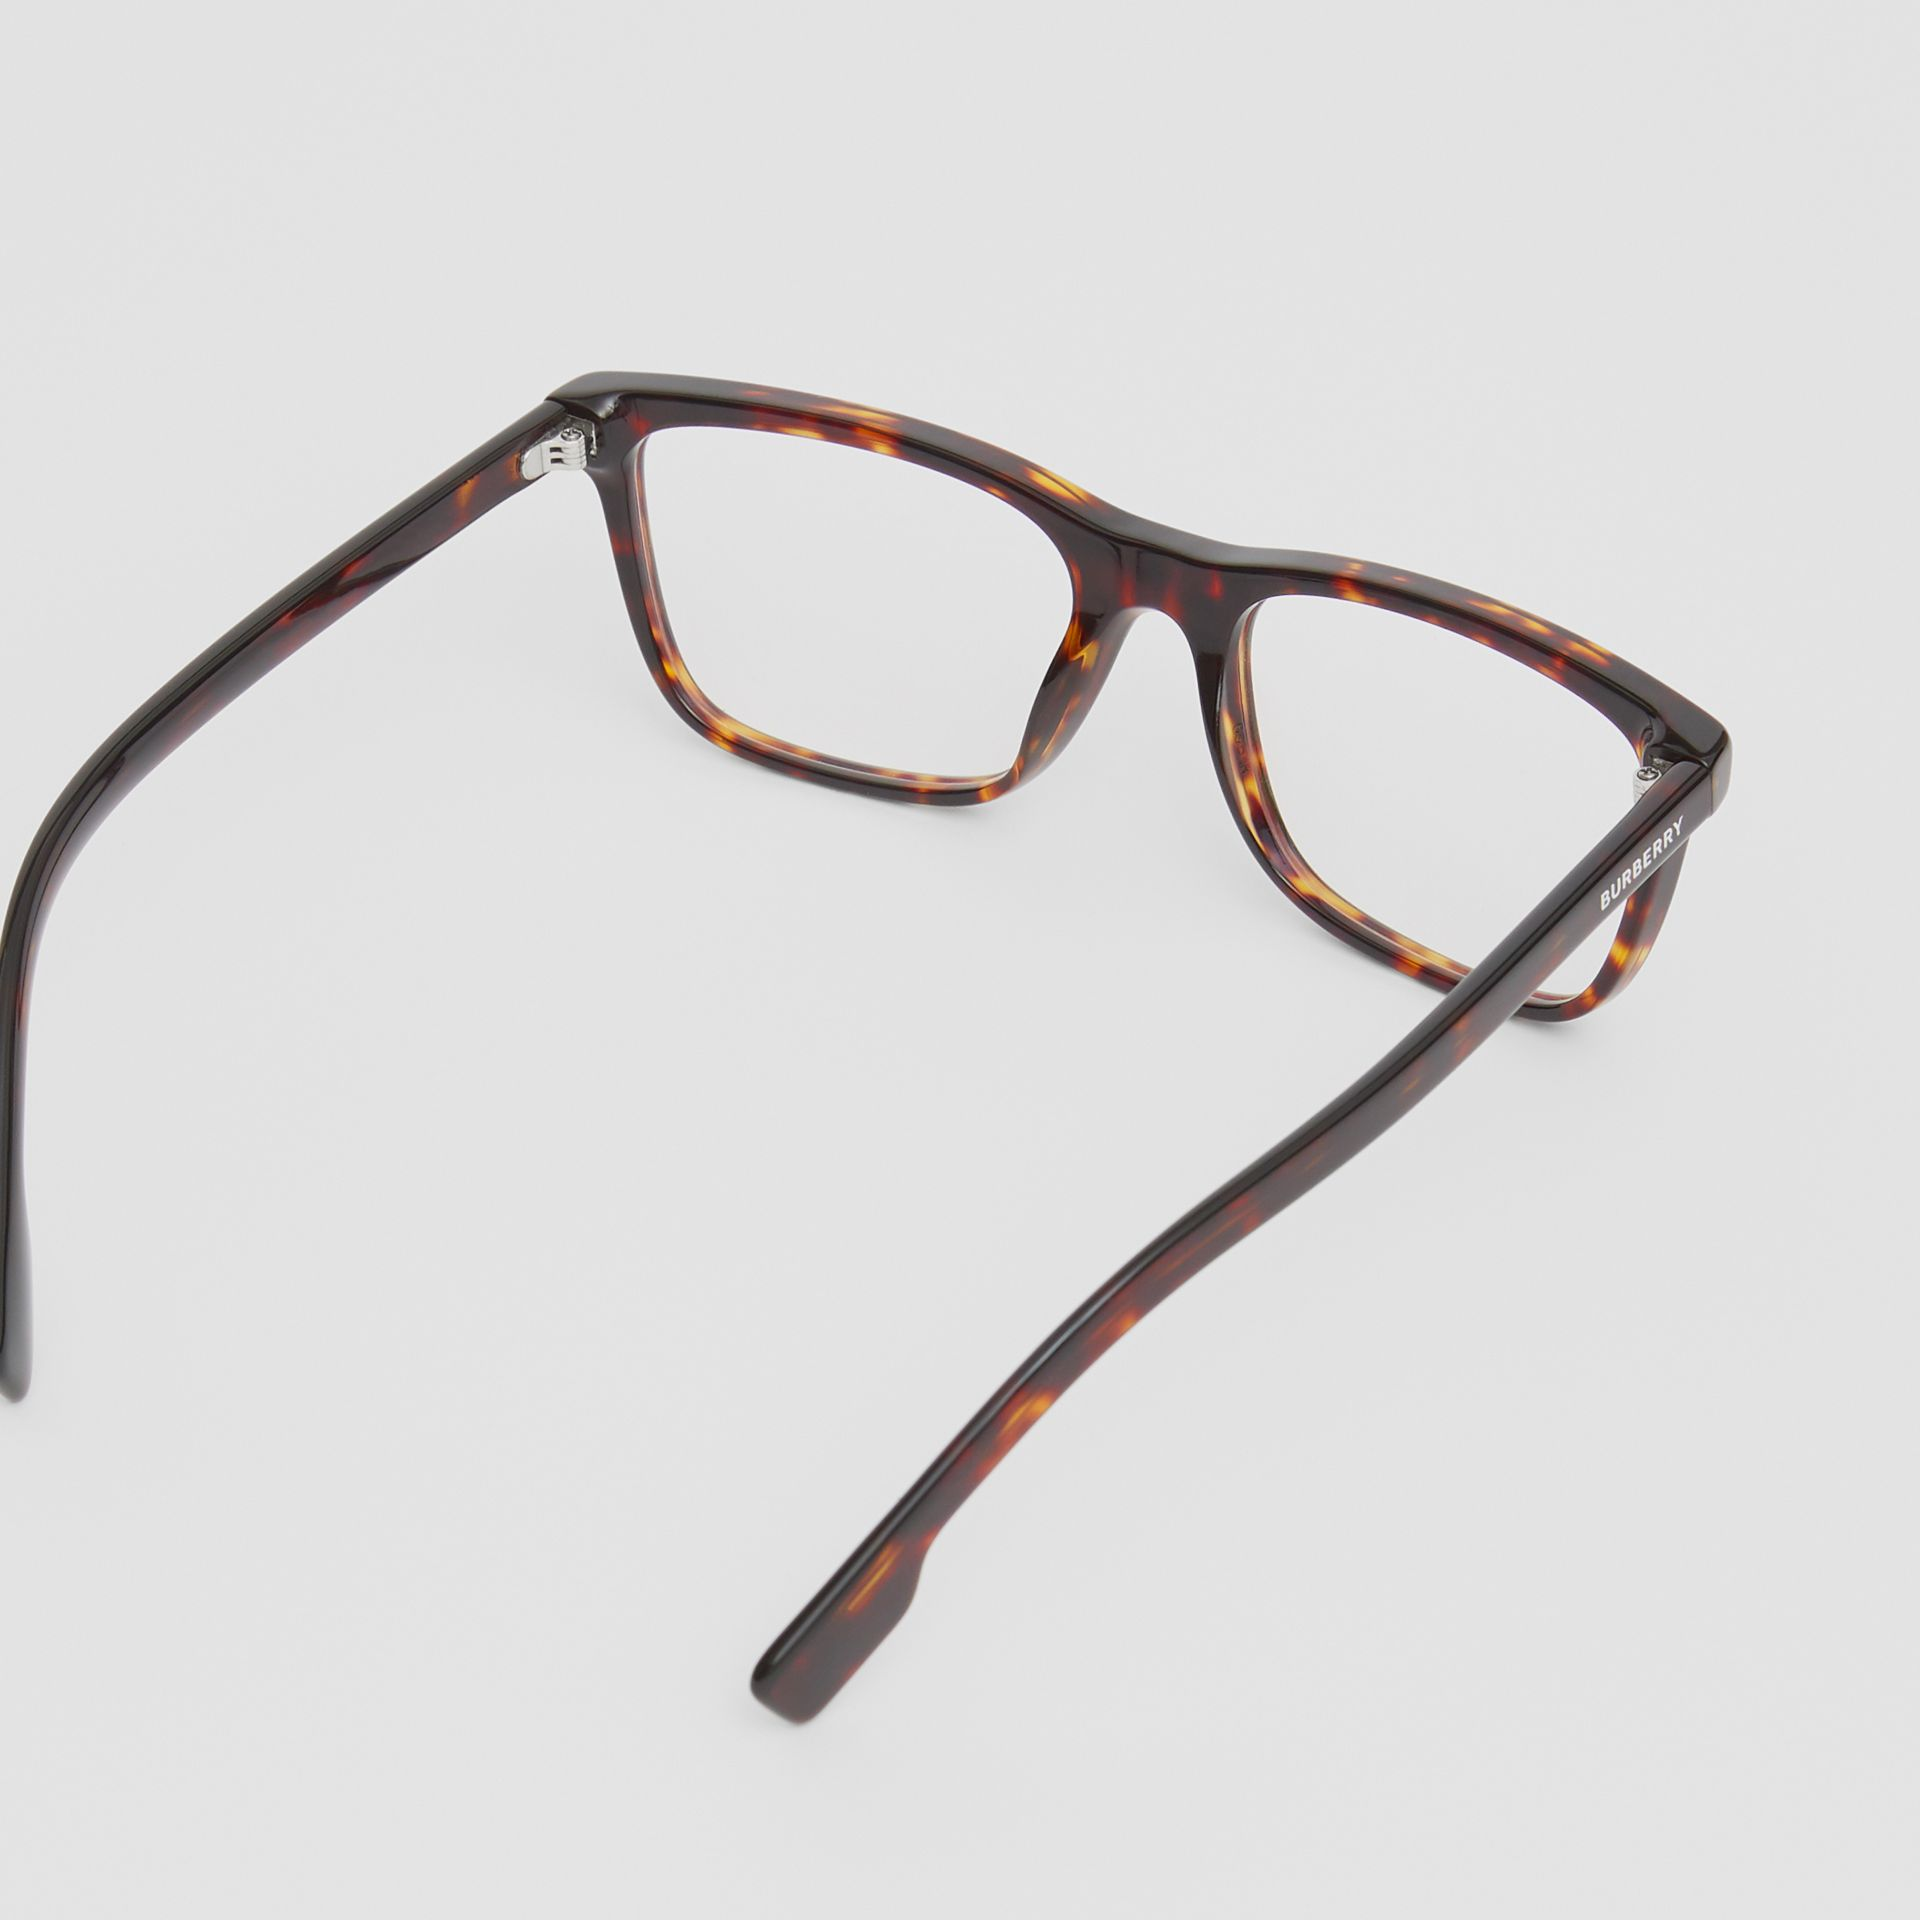 Rectangular Optical Frames in Tortoiseshell - Men | Burberry United Kingdom - gallery image 4